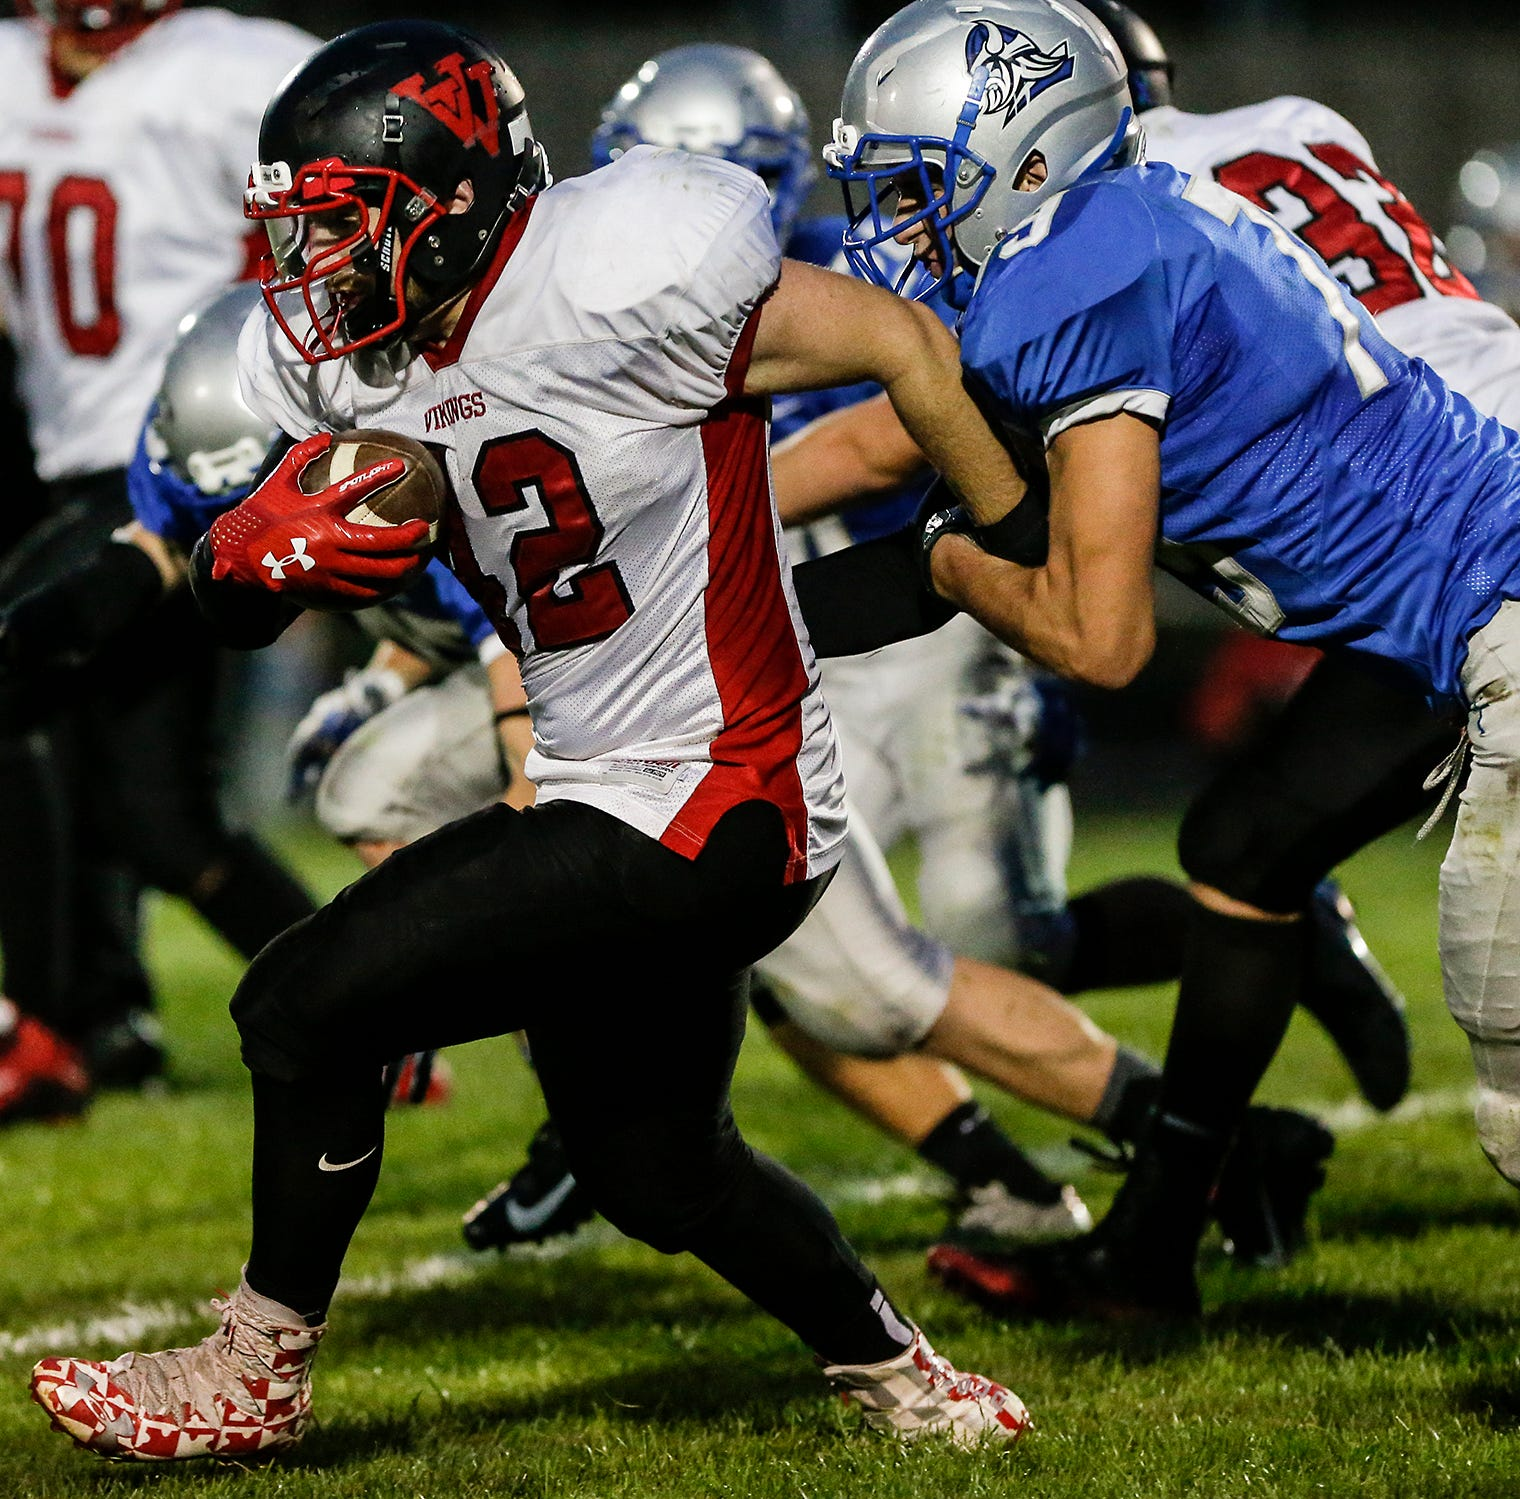 High school football: Kiel, Valders meet in key EWC matchup